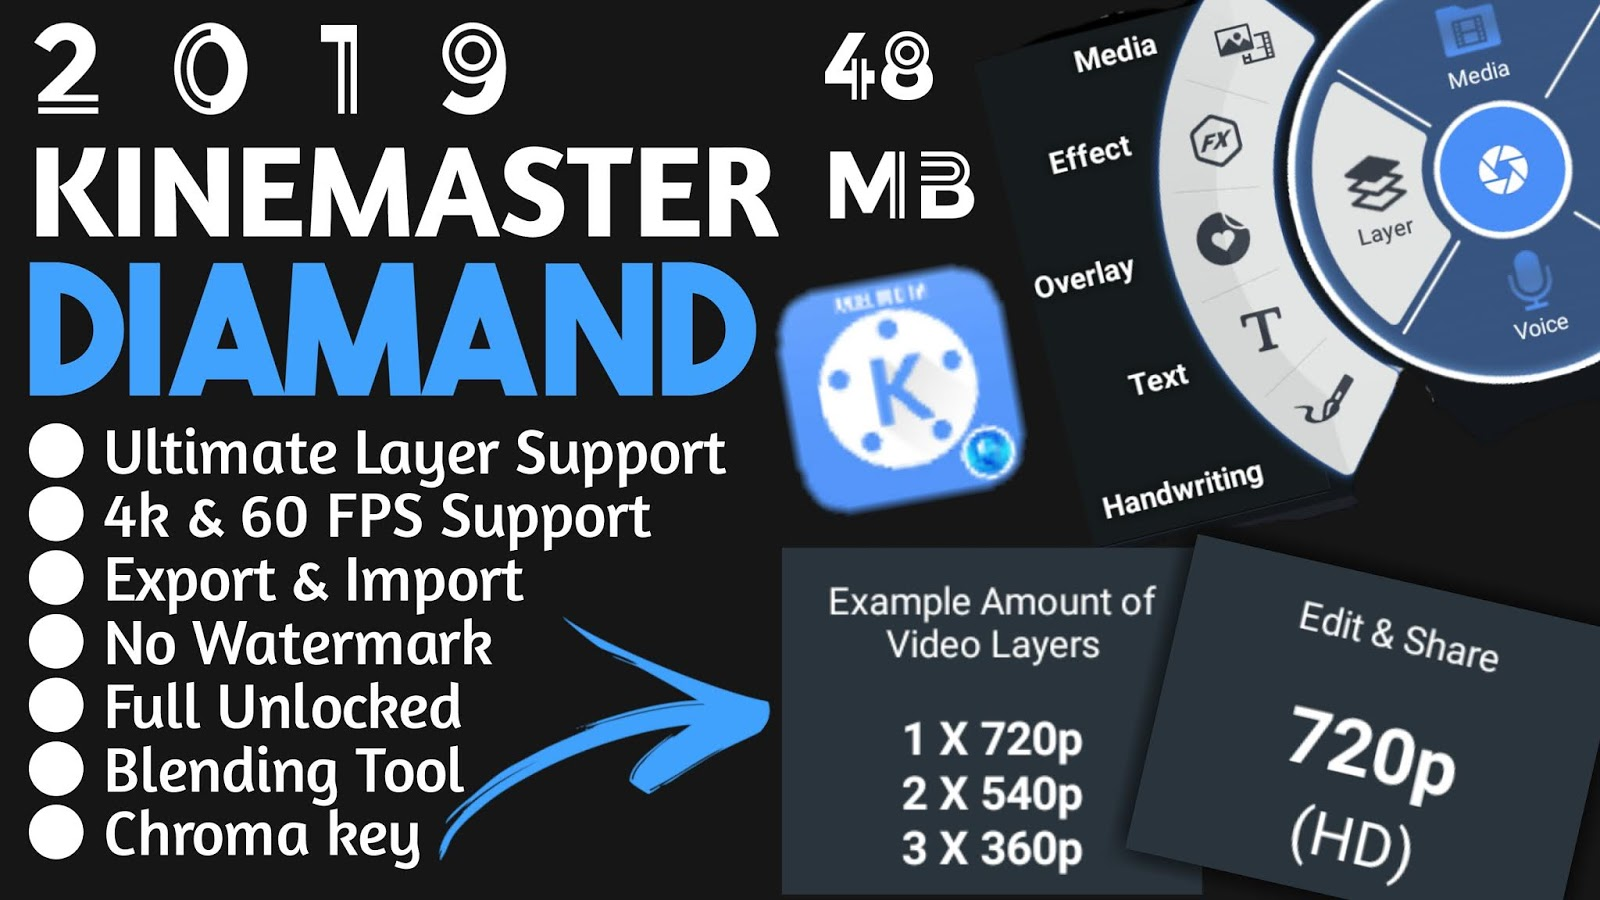 kinemaster Diamond Mode Apk 2019 No watermark with chroma